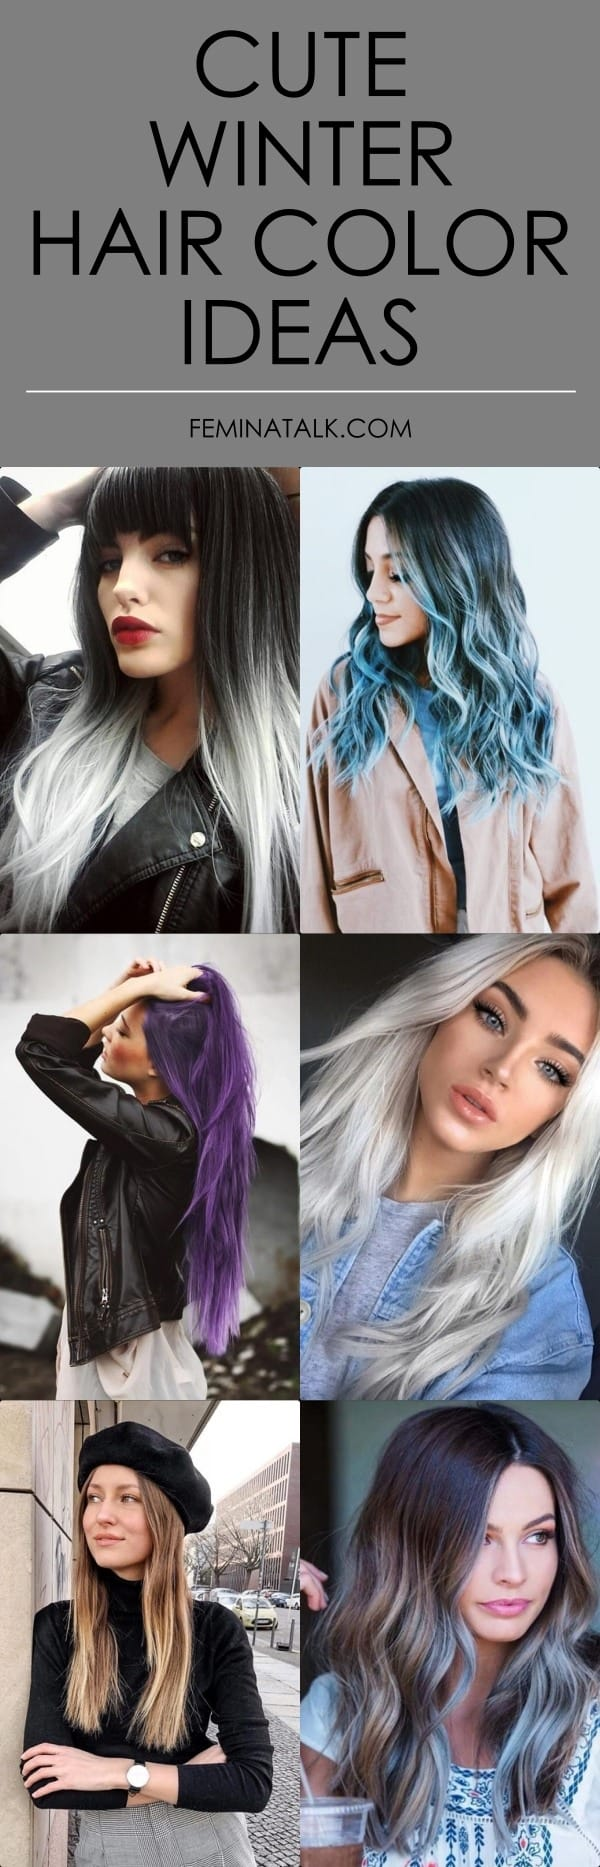 Cute Winter Hair Color Ideas